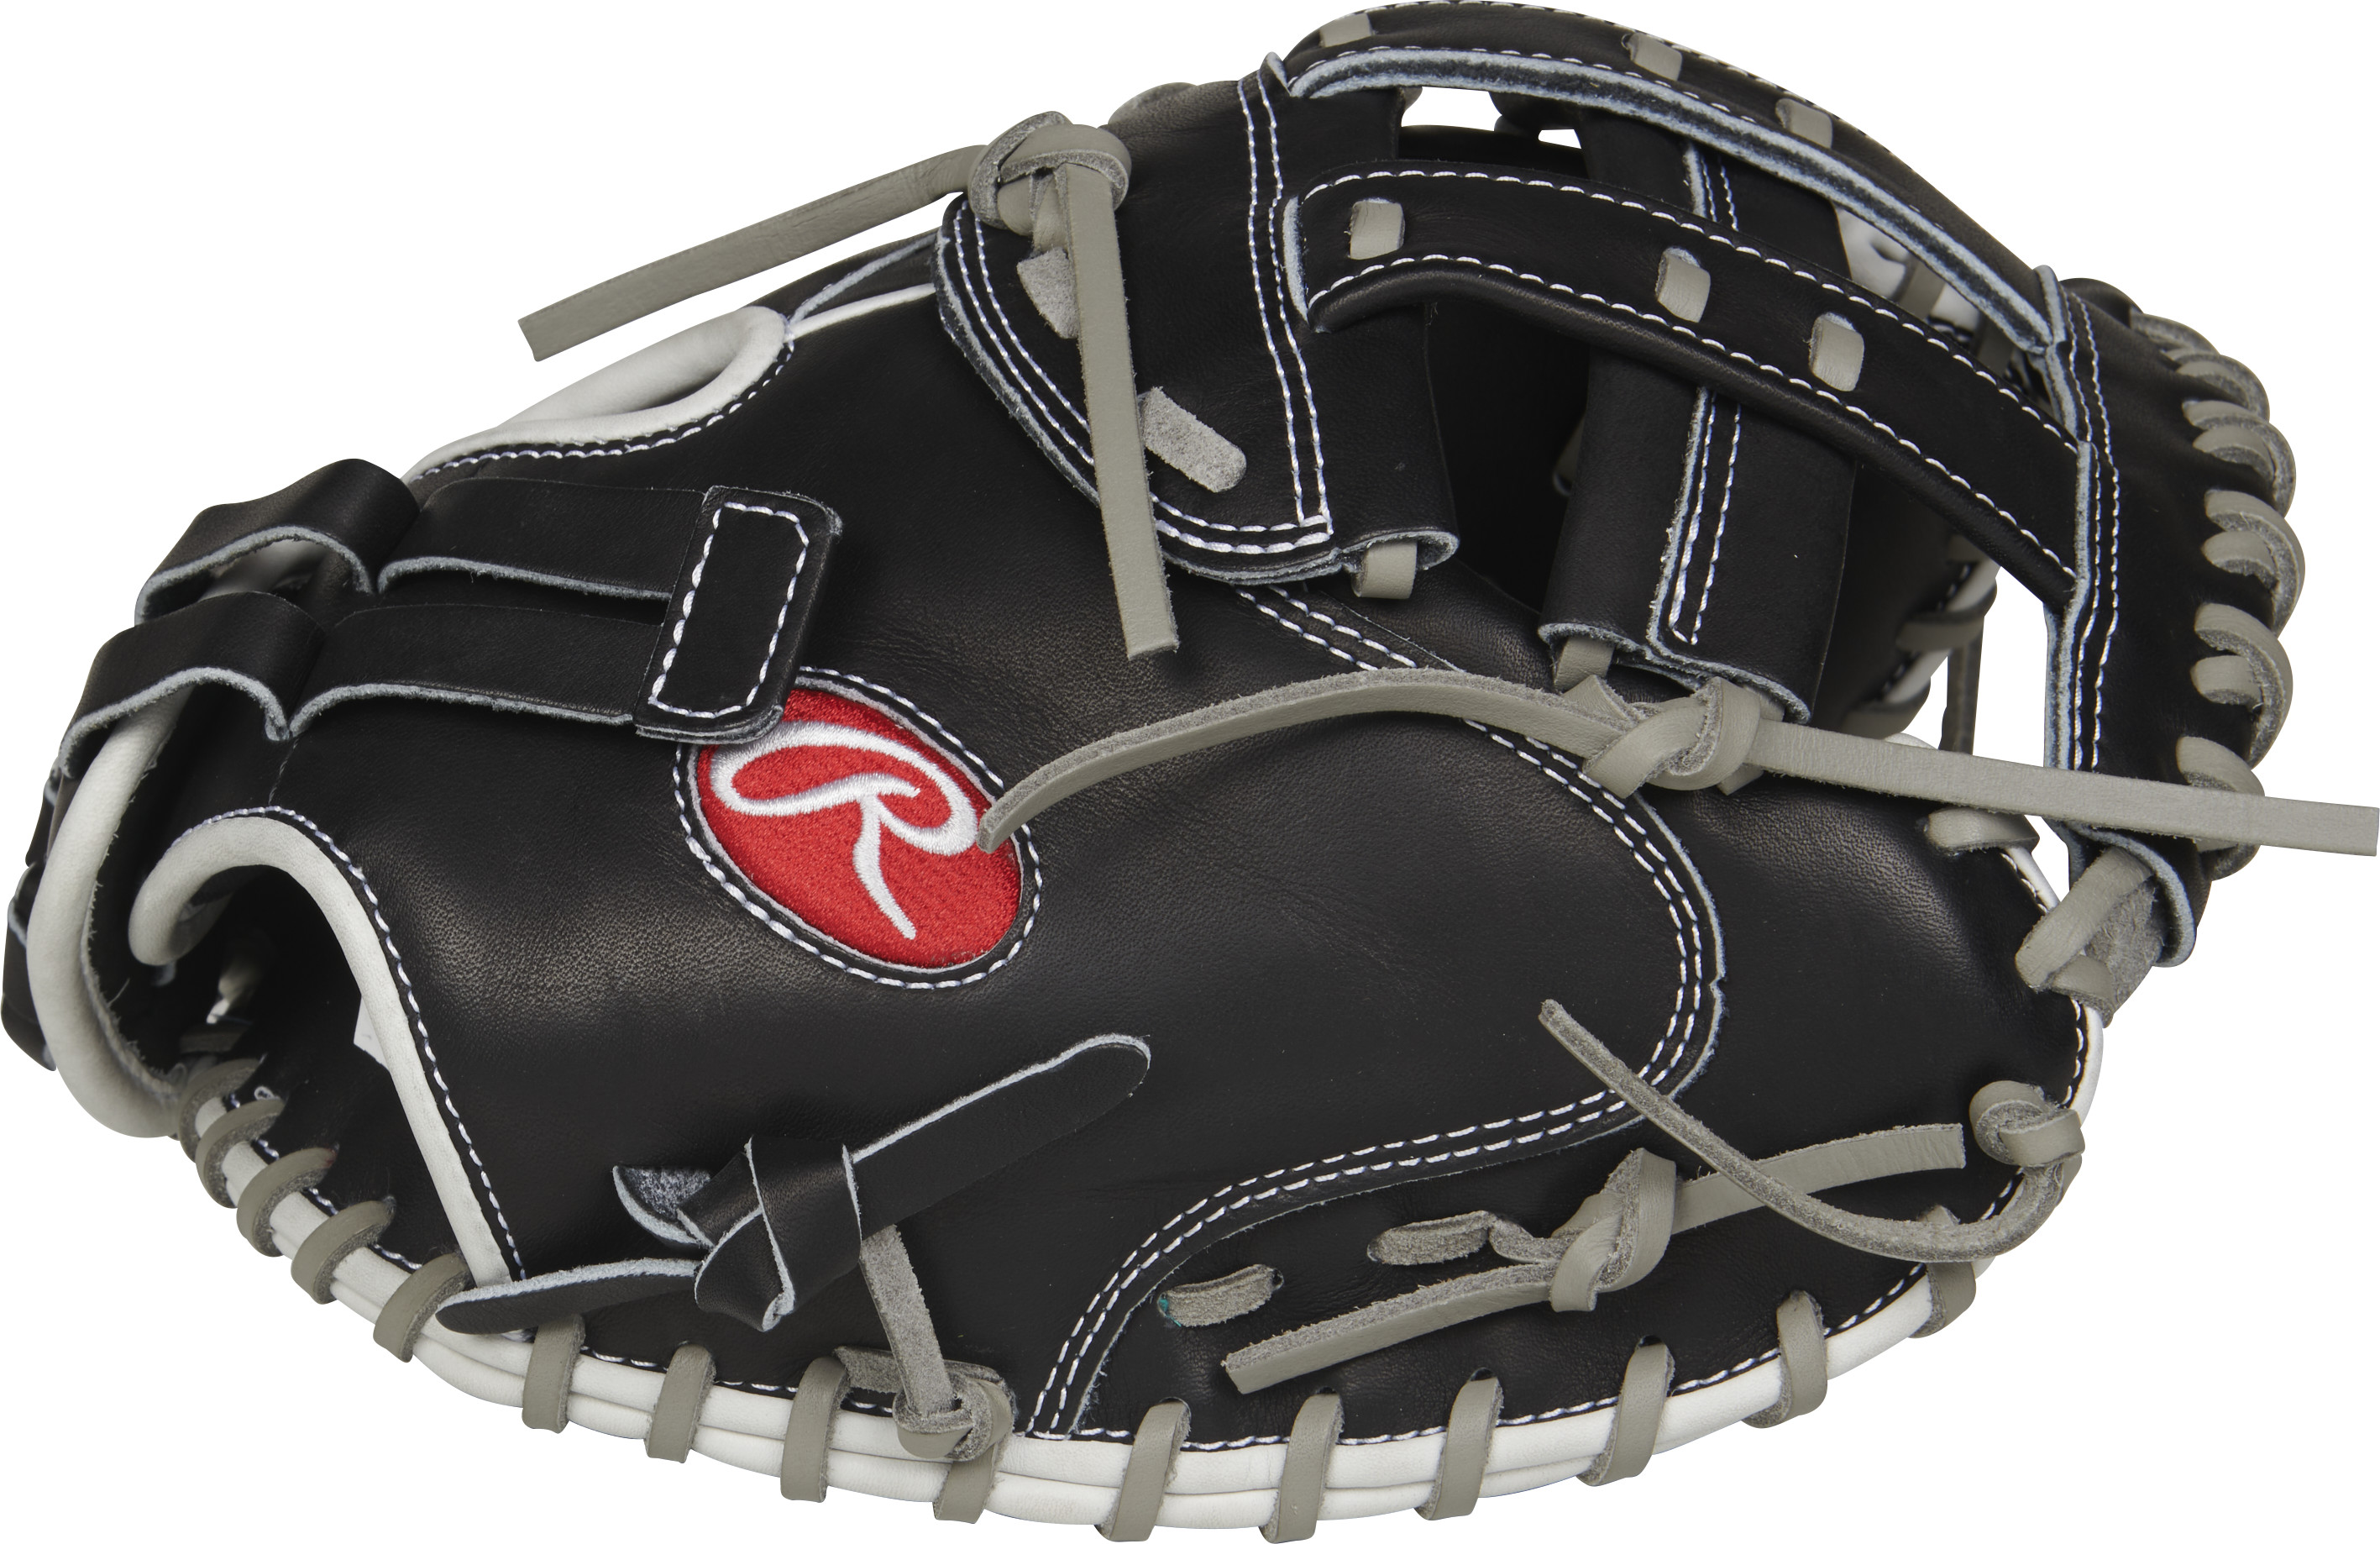 http://www.bestbatdeals.com/images/gloves/rawlings/PROCM33FP-24BG-3.jpg